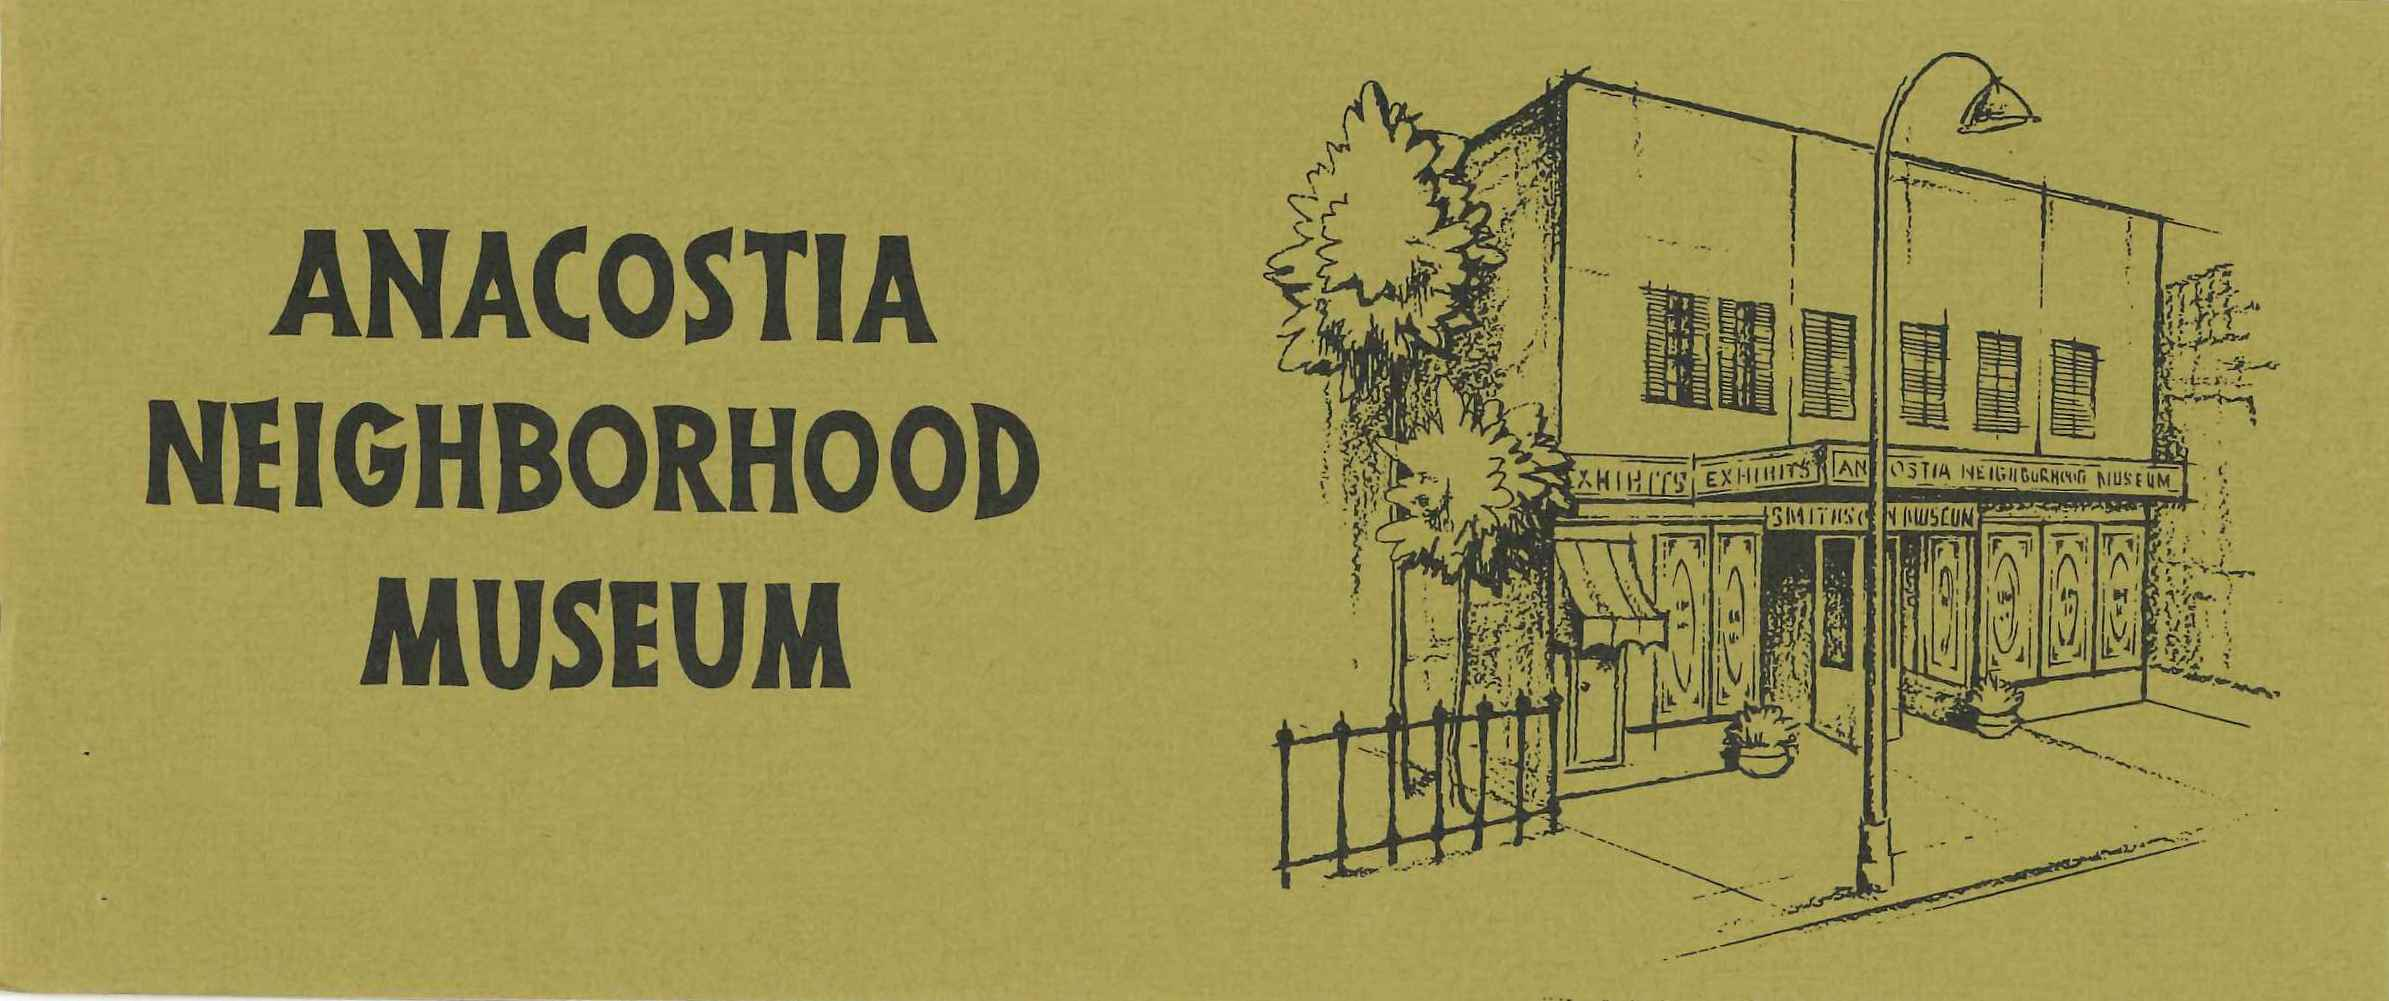 Brochure for Anacostia Neighborhood Museum, circa 1967.